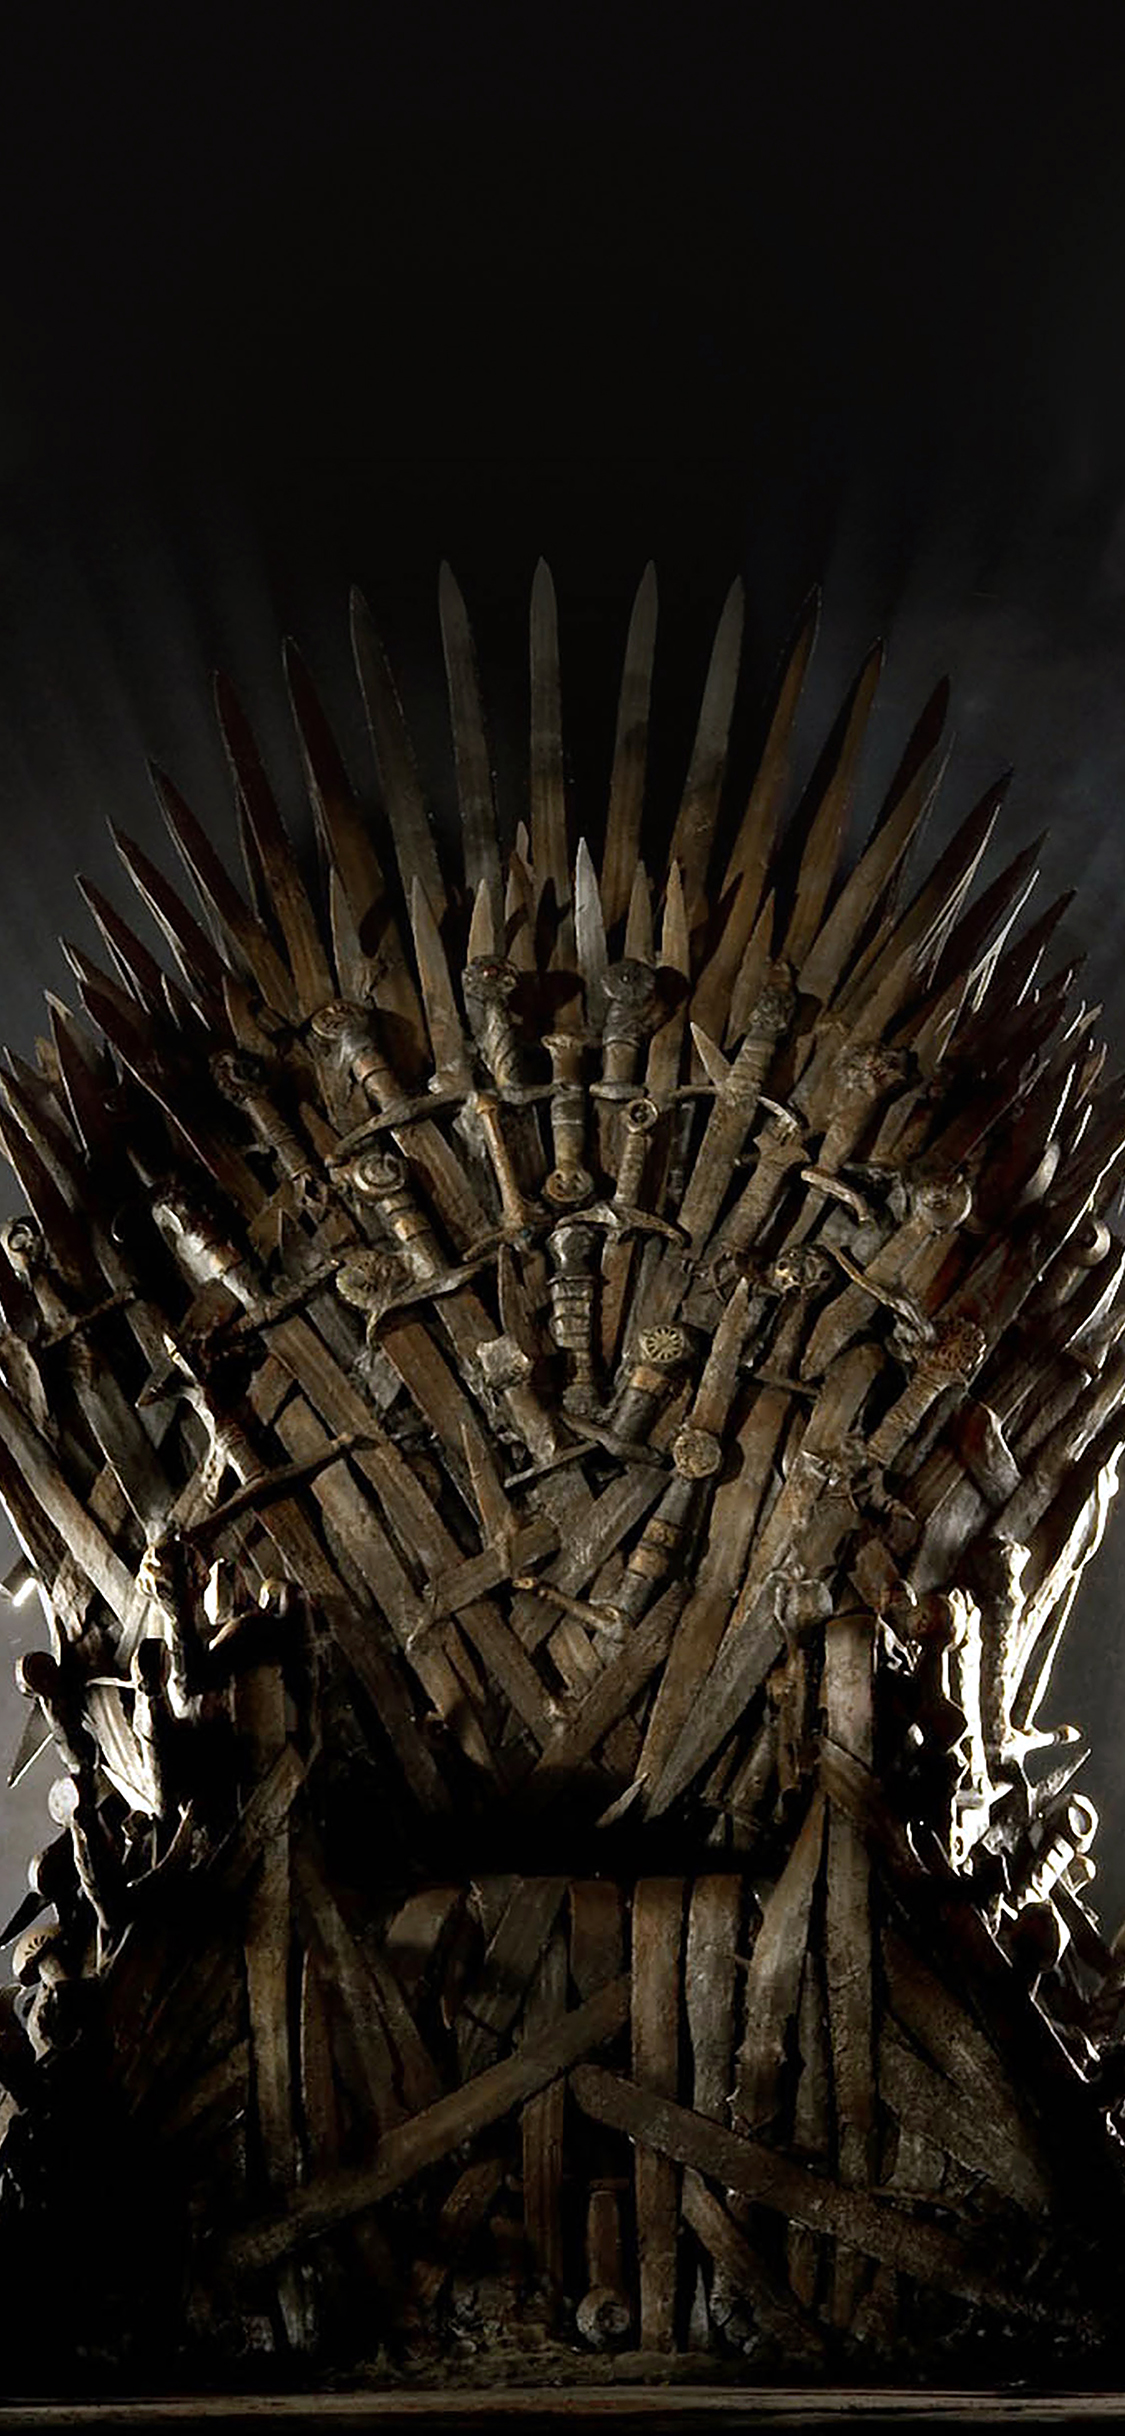 Ab78 Wallpaper Game Of Thrones Poster Drama Papers Co